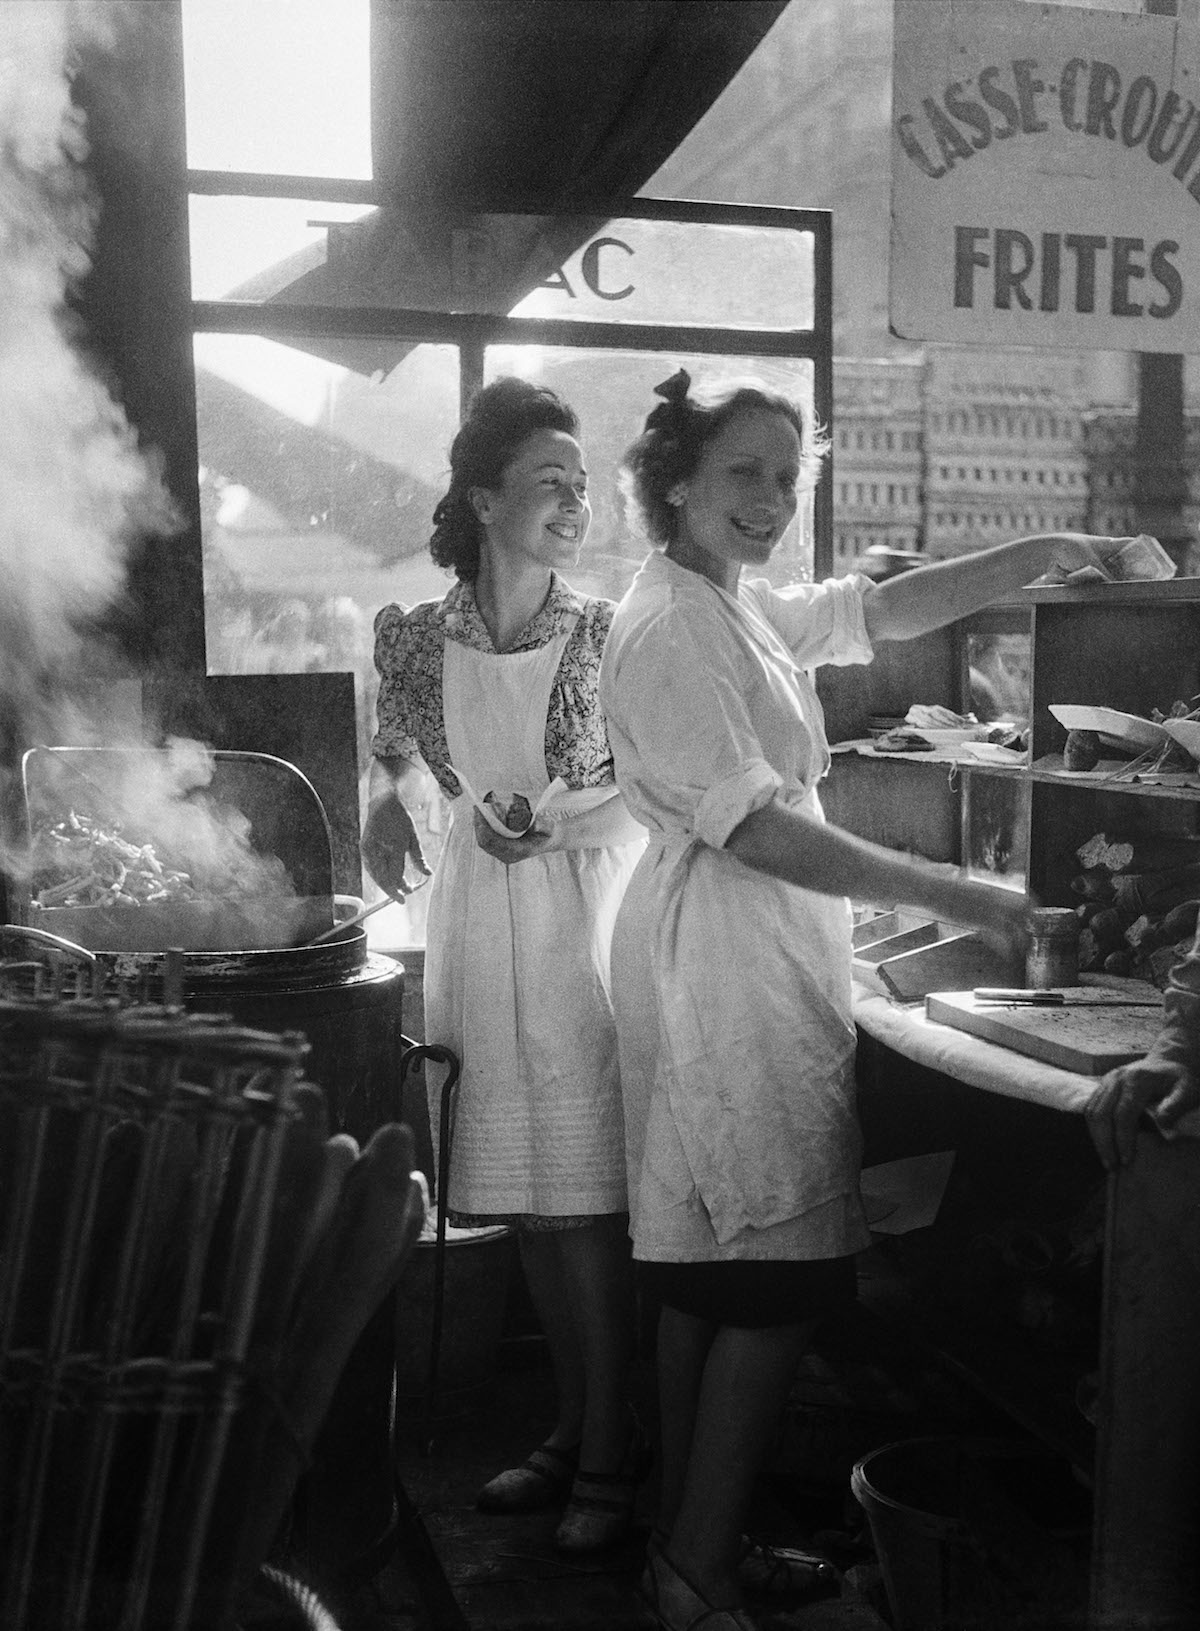 Post-War Paris Photography by Willy Ronis